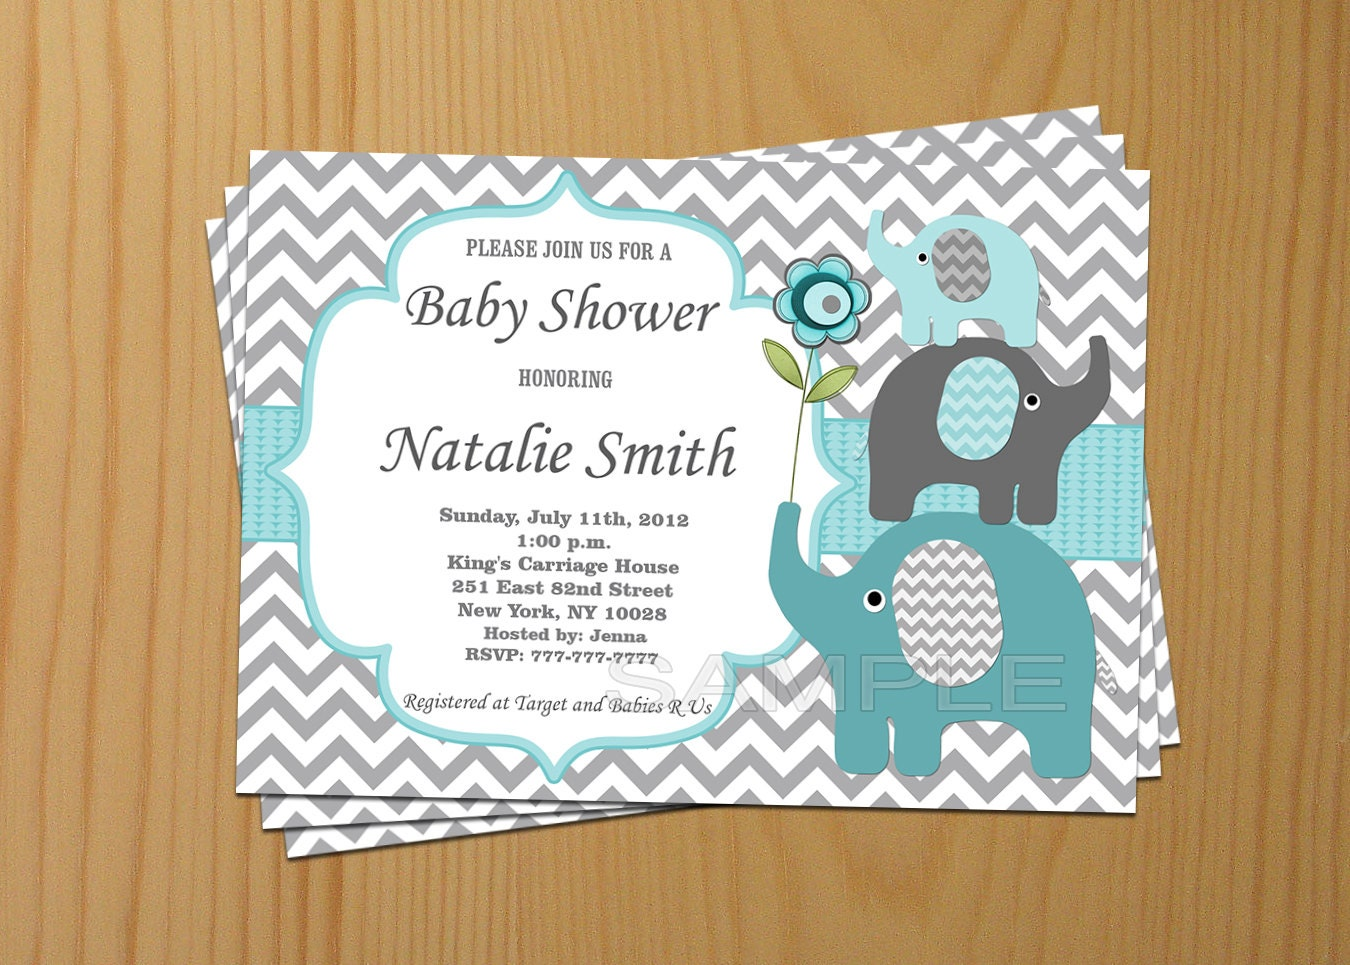 products shower pop boy bump invitations a for to about invitation baby maximcreativeinvites